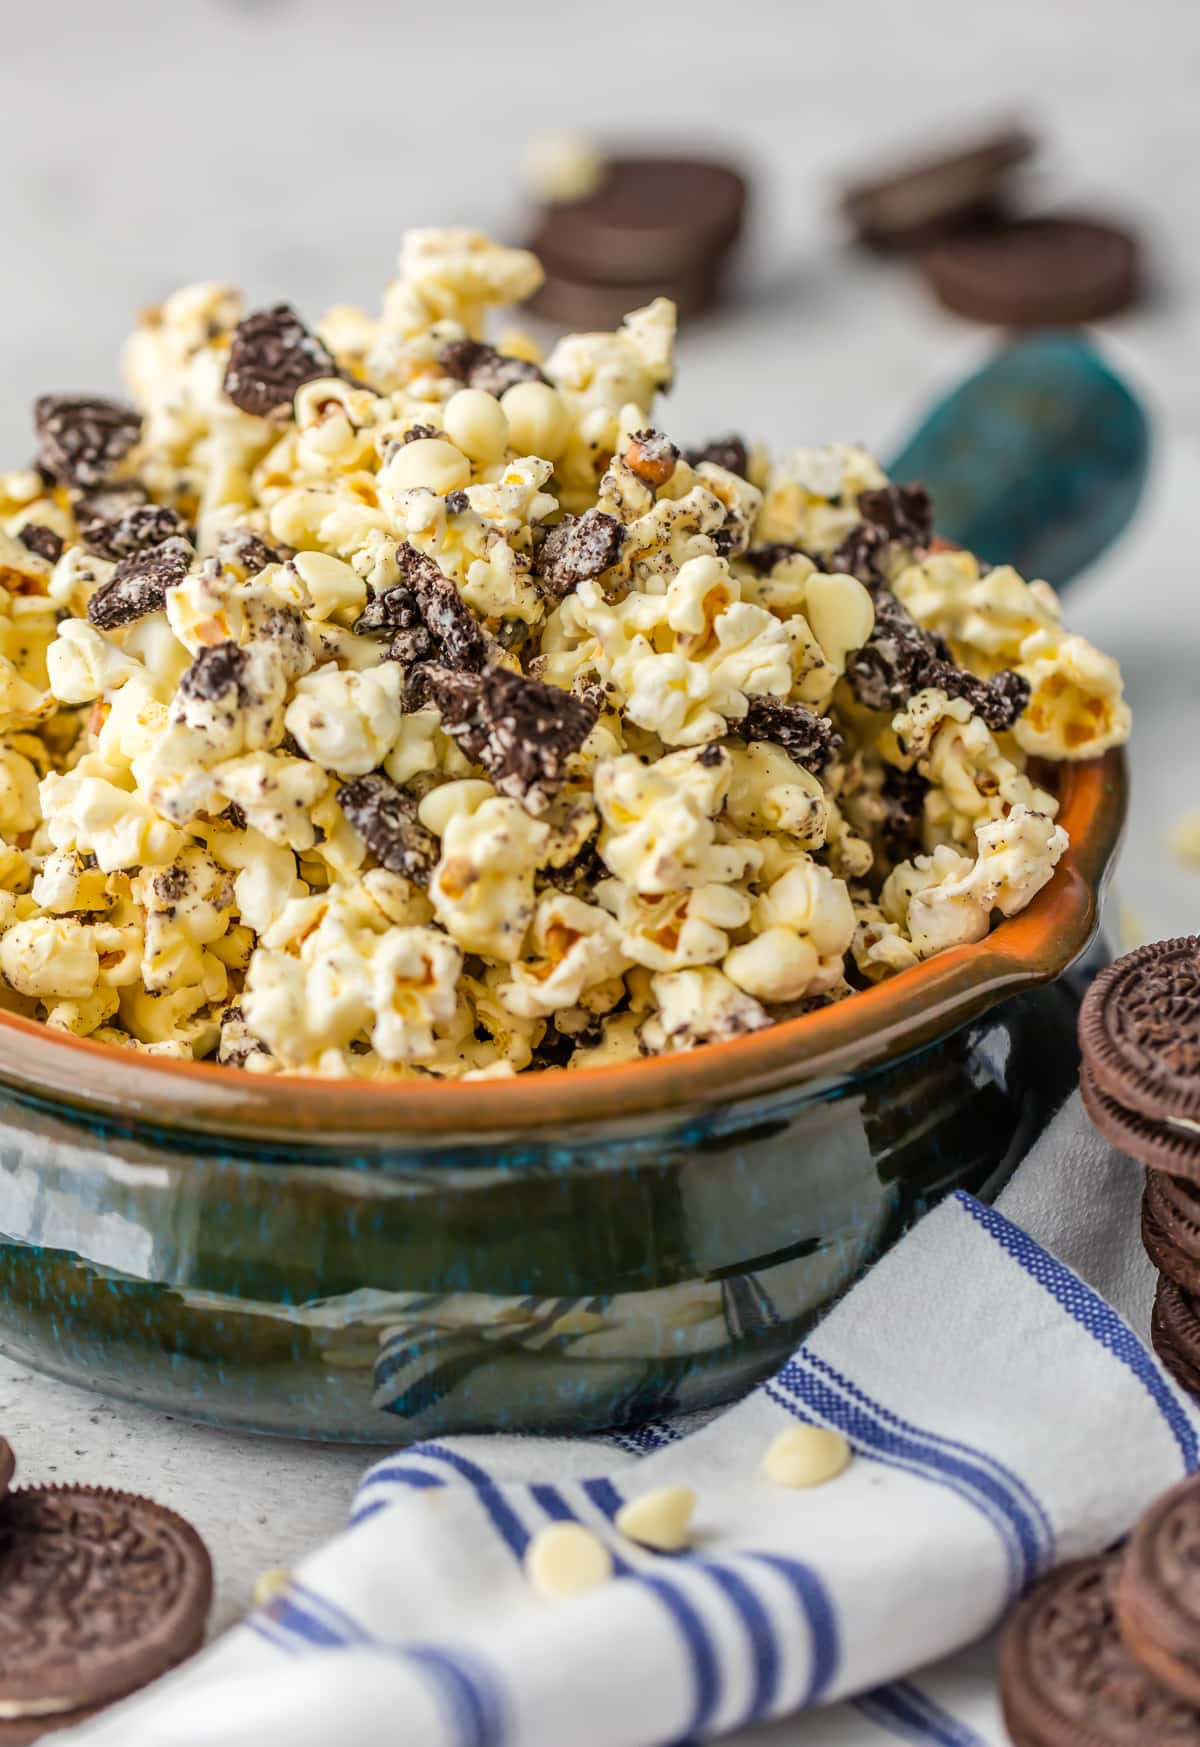 A bowl of Oreo and white chocolate popcorn surrounded by Oreos